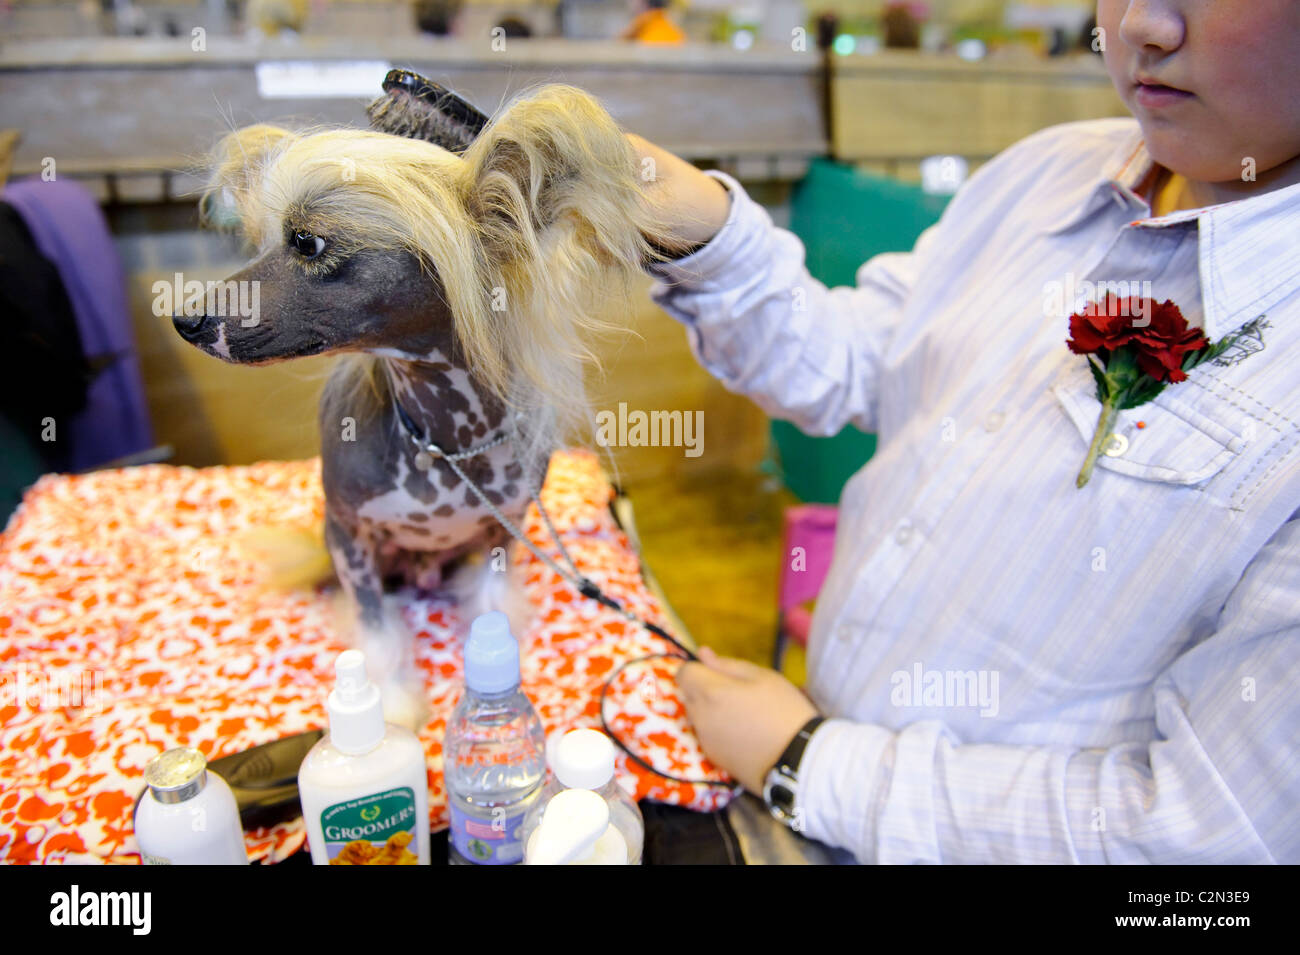 Atomosphere at the third day of the annual dog show 'Crufts' held at the Birmingham NEC Arena, 13th March - Stock Image